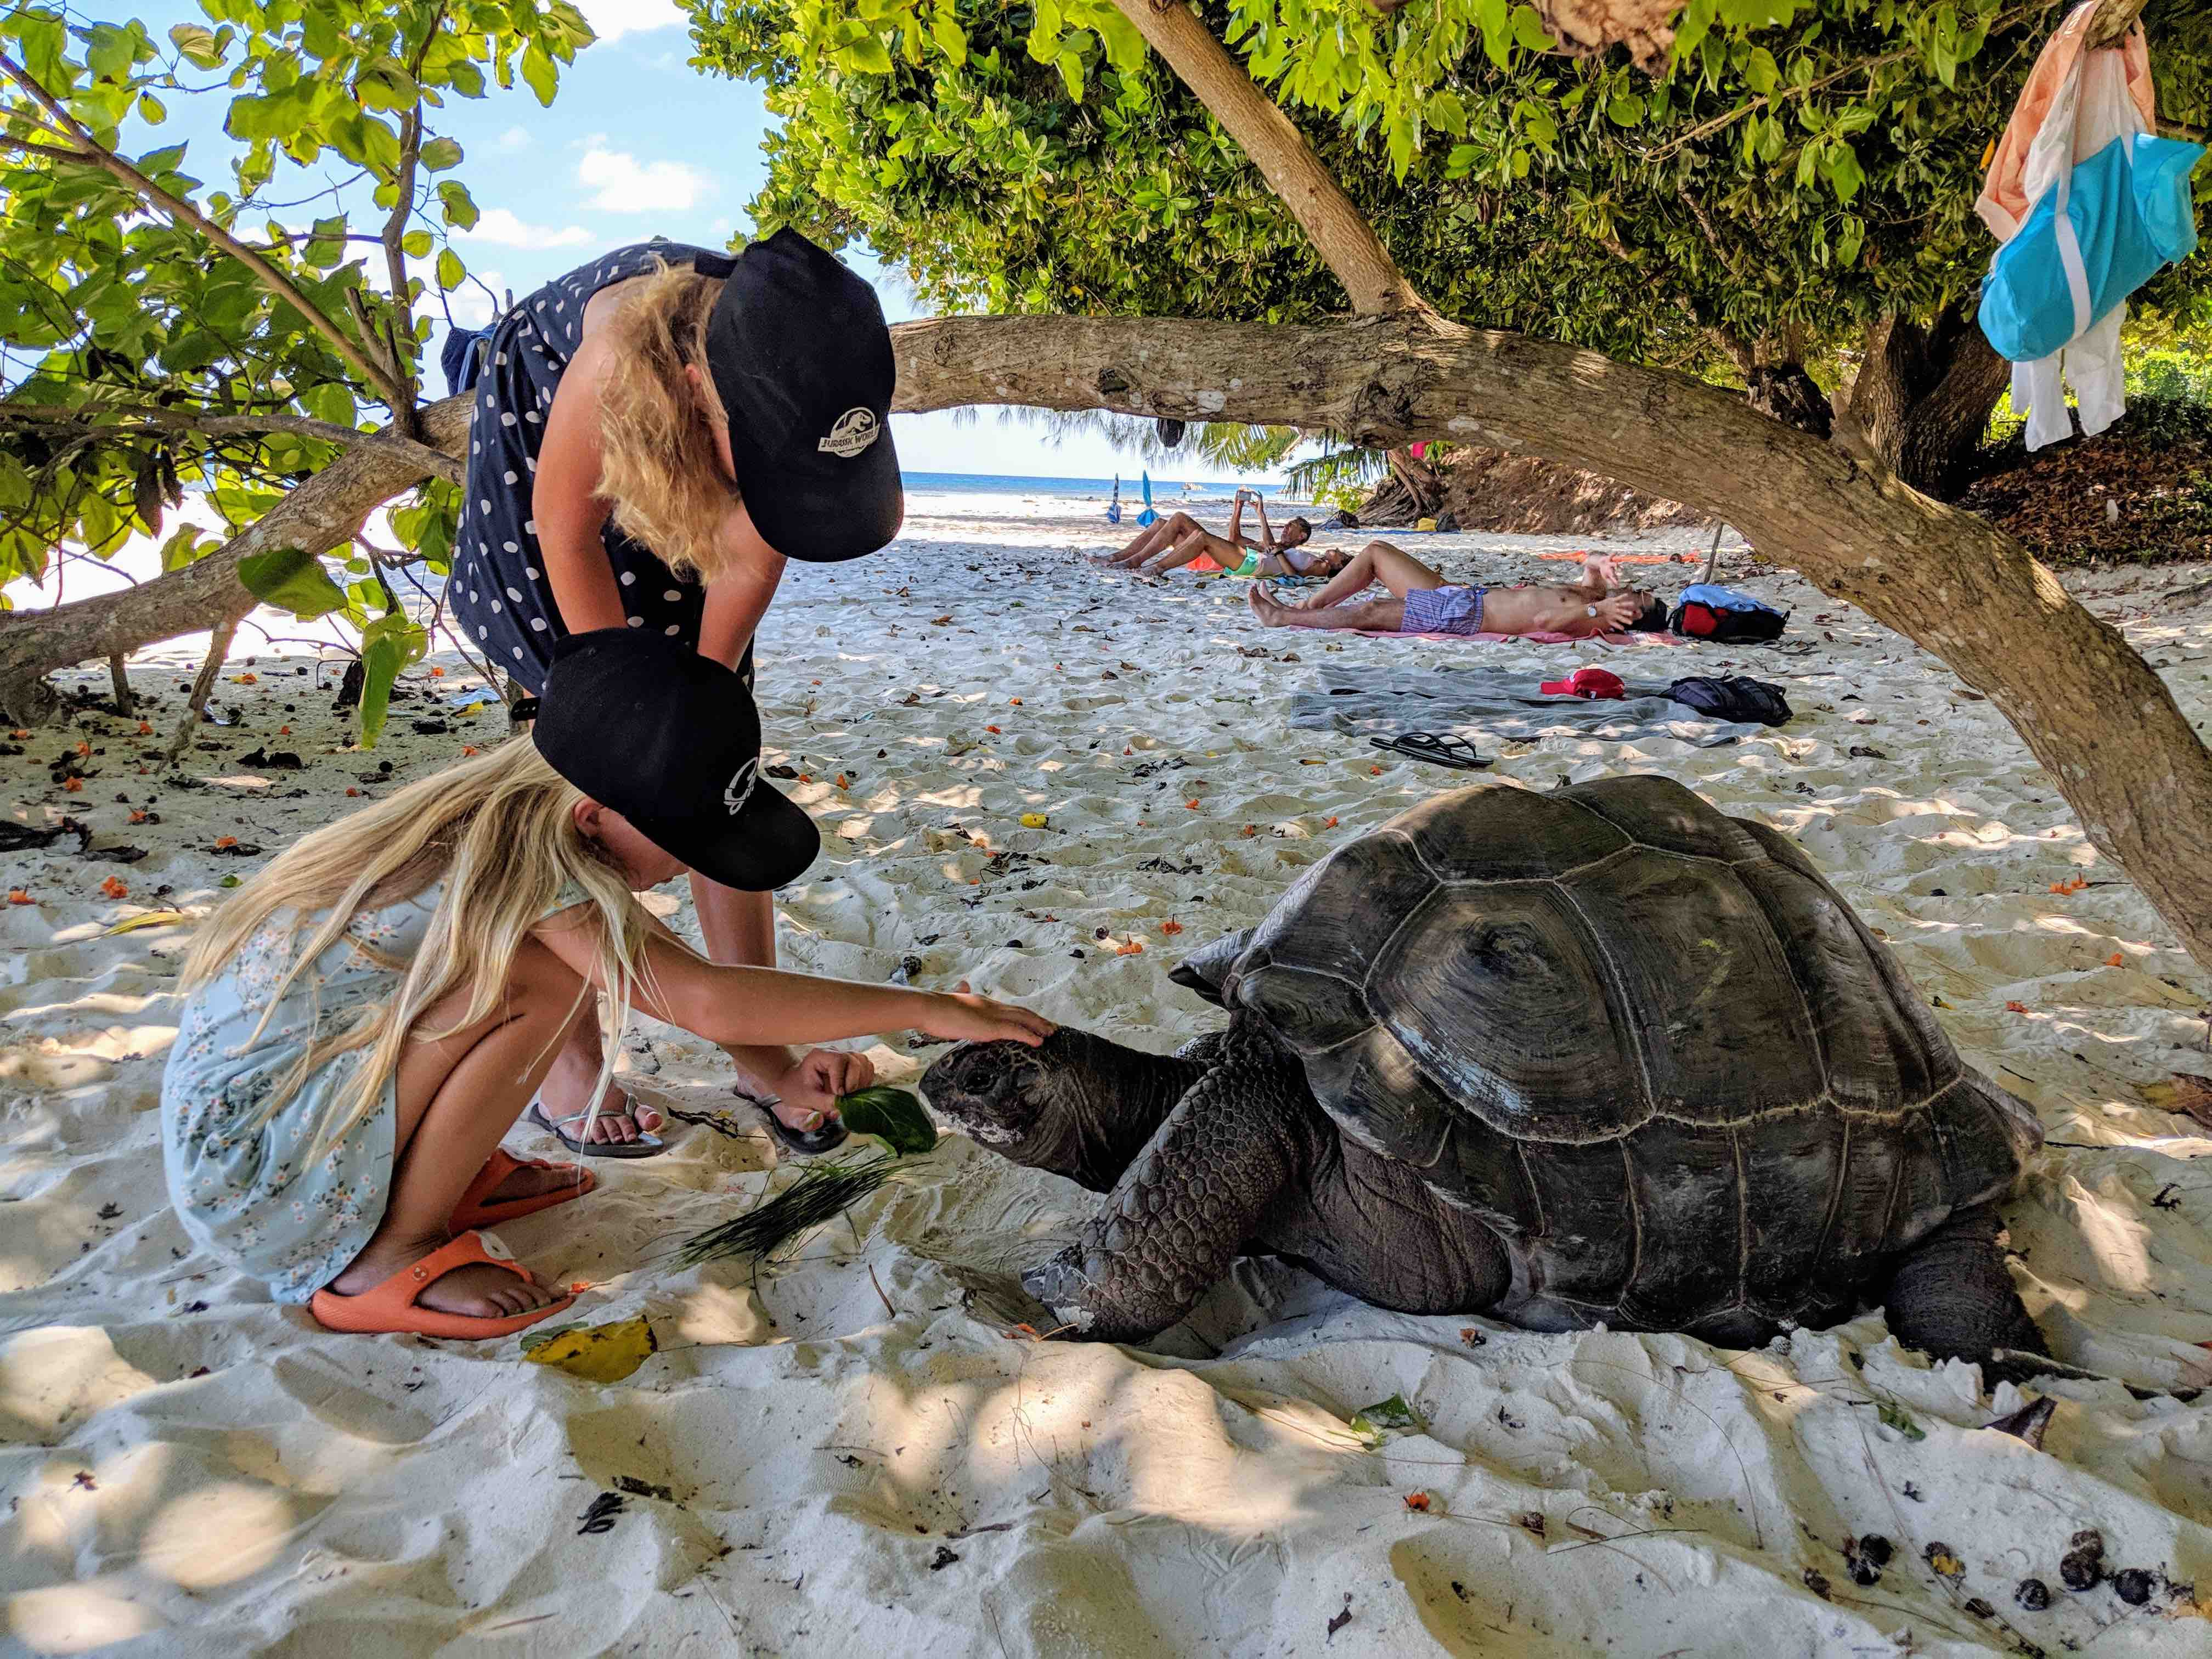 Giant turtle at the beach Seychelles